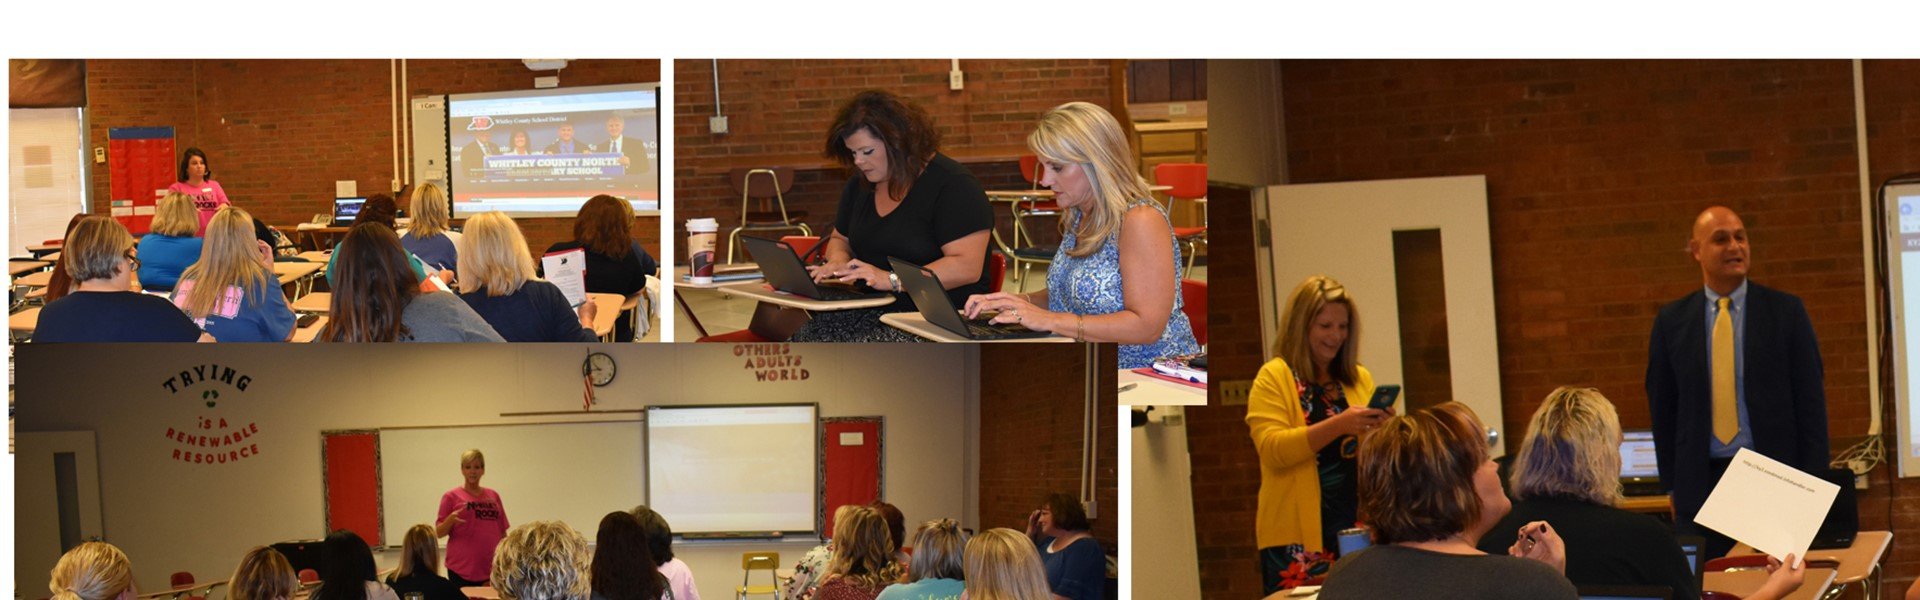 Whitley County Employees Professional Development begins